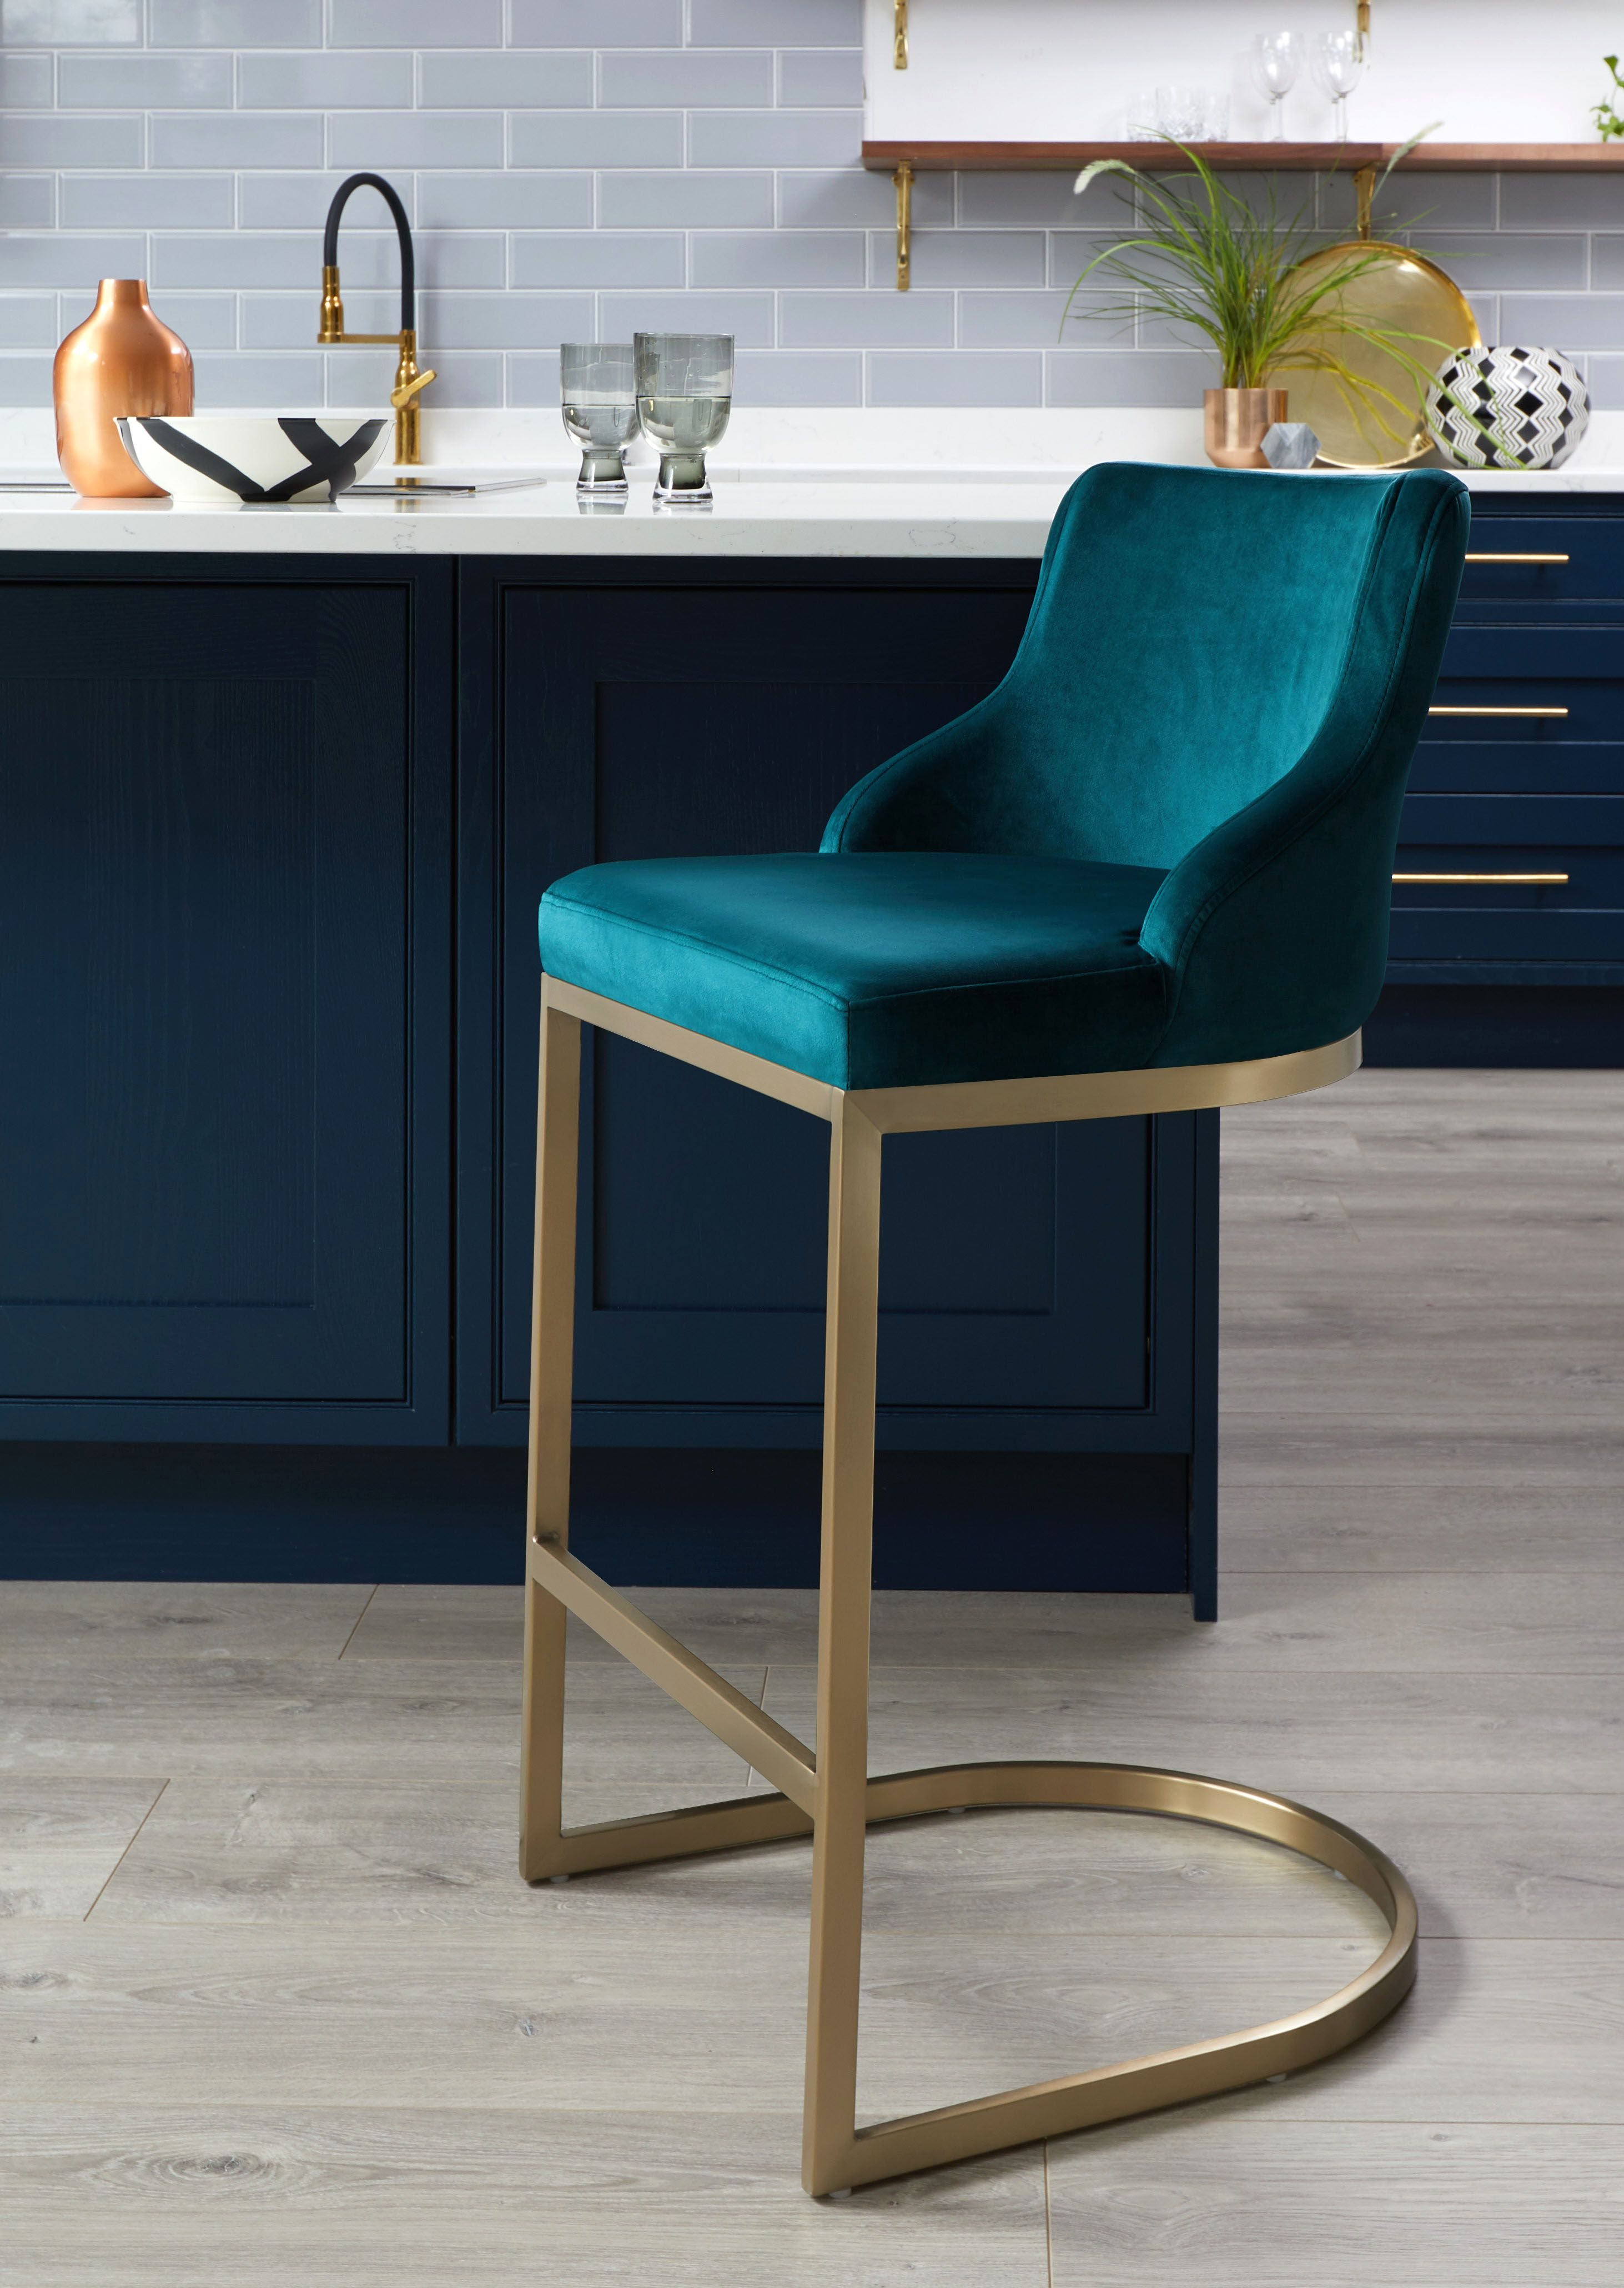 Teal Velvet With Brushed Brass Base In A Dark Blue Kitchen Dark